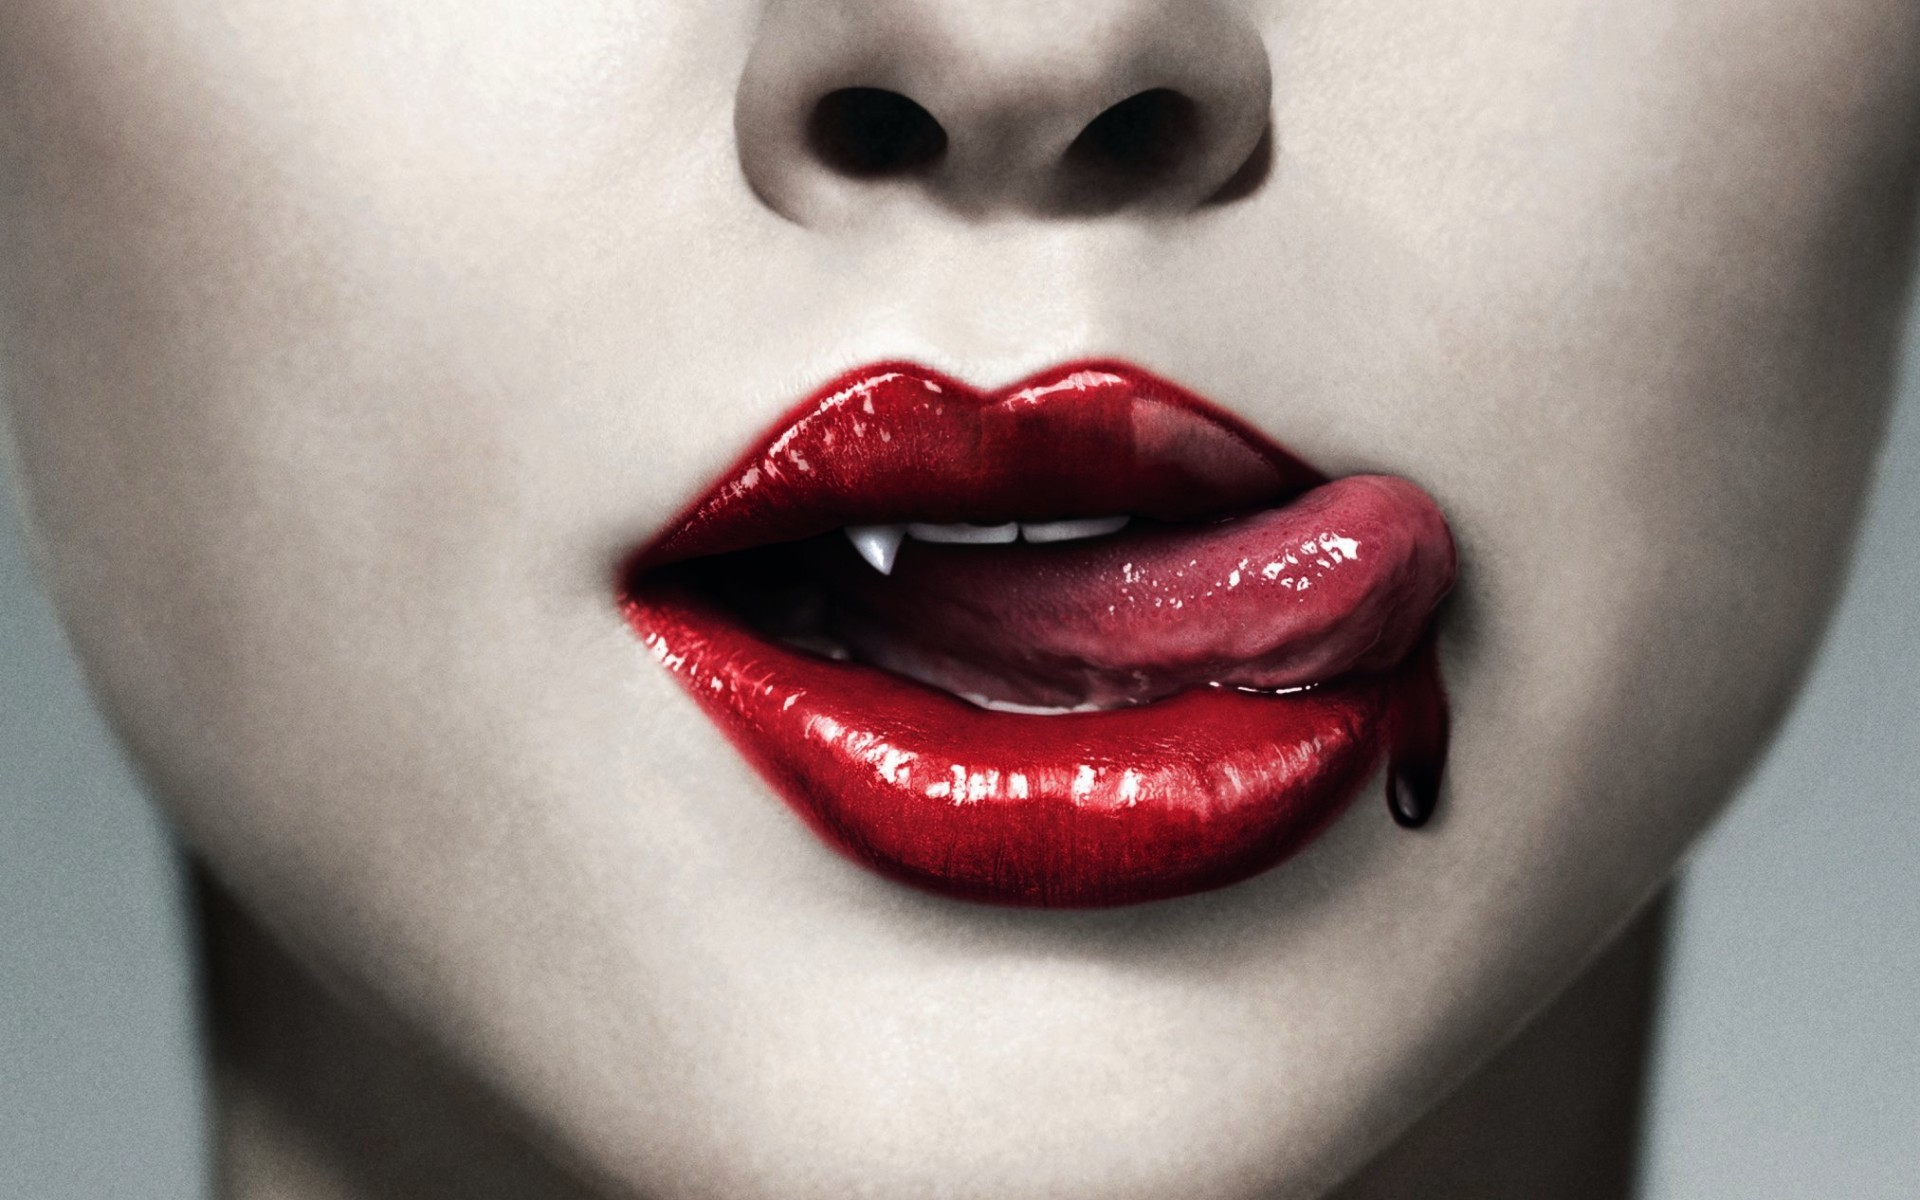 True Blood mouth with blood